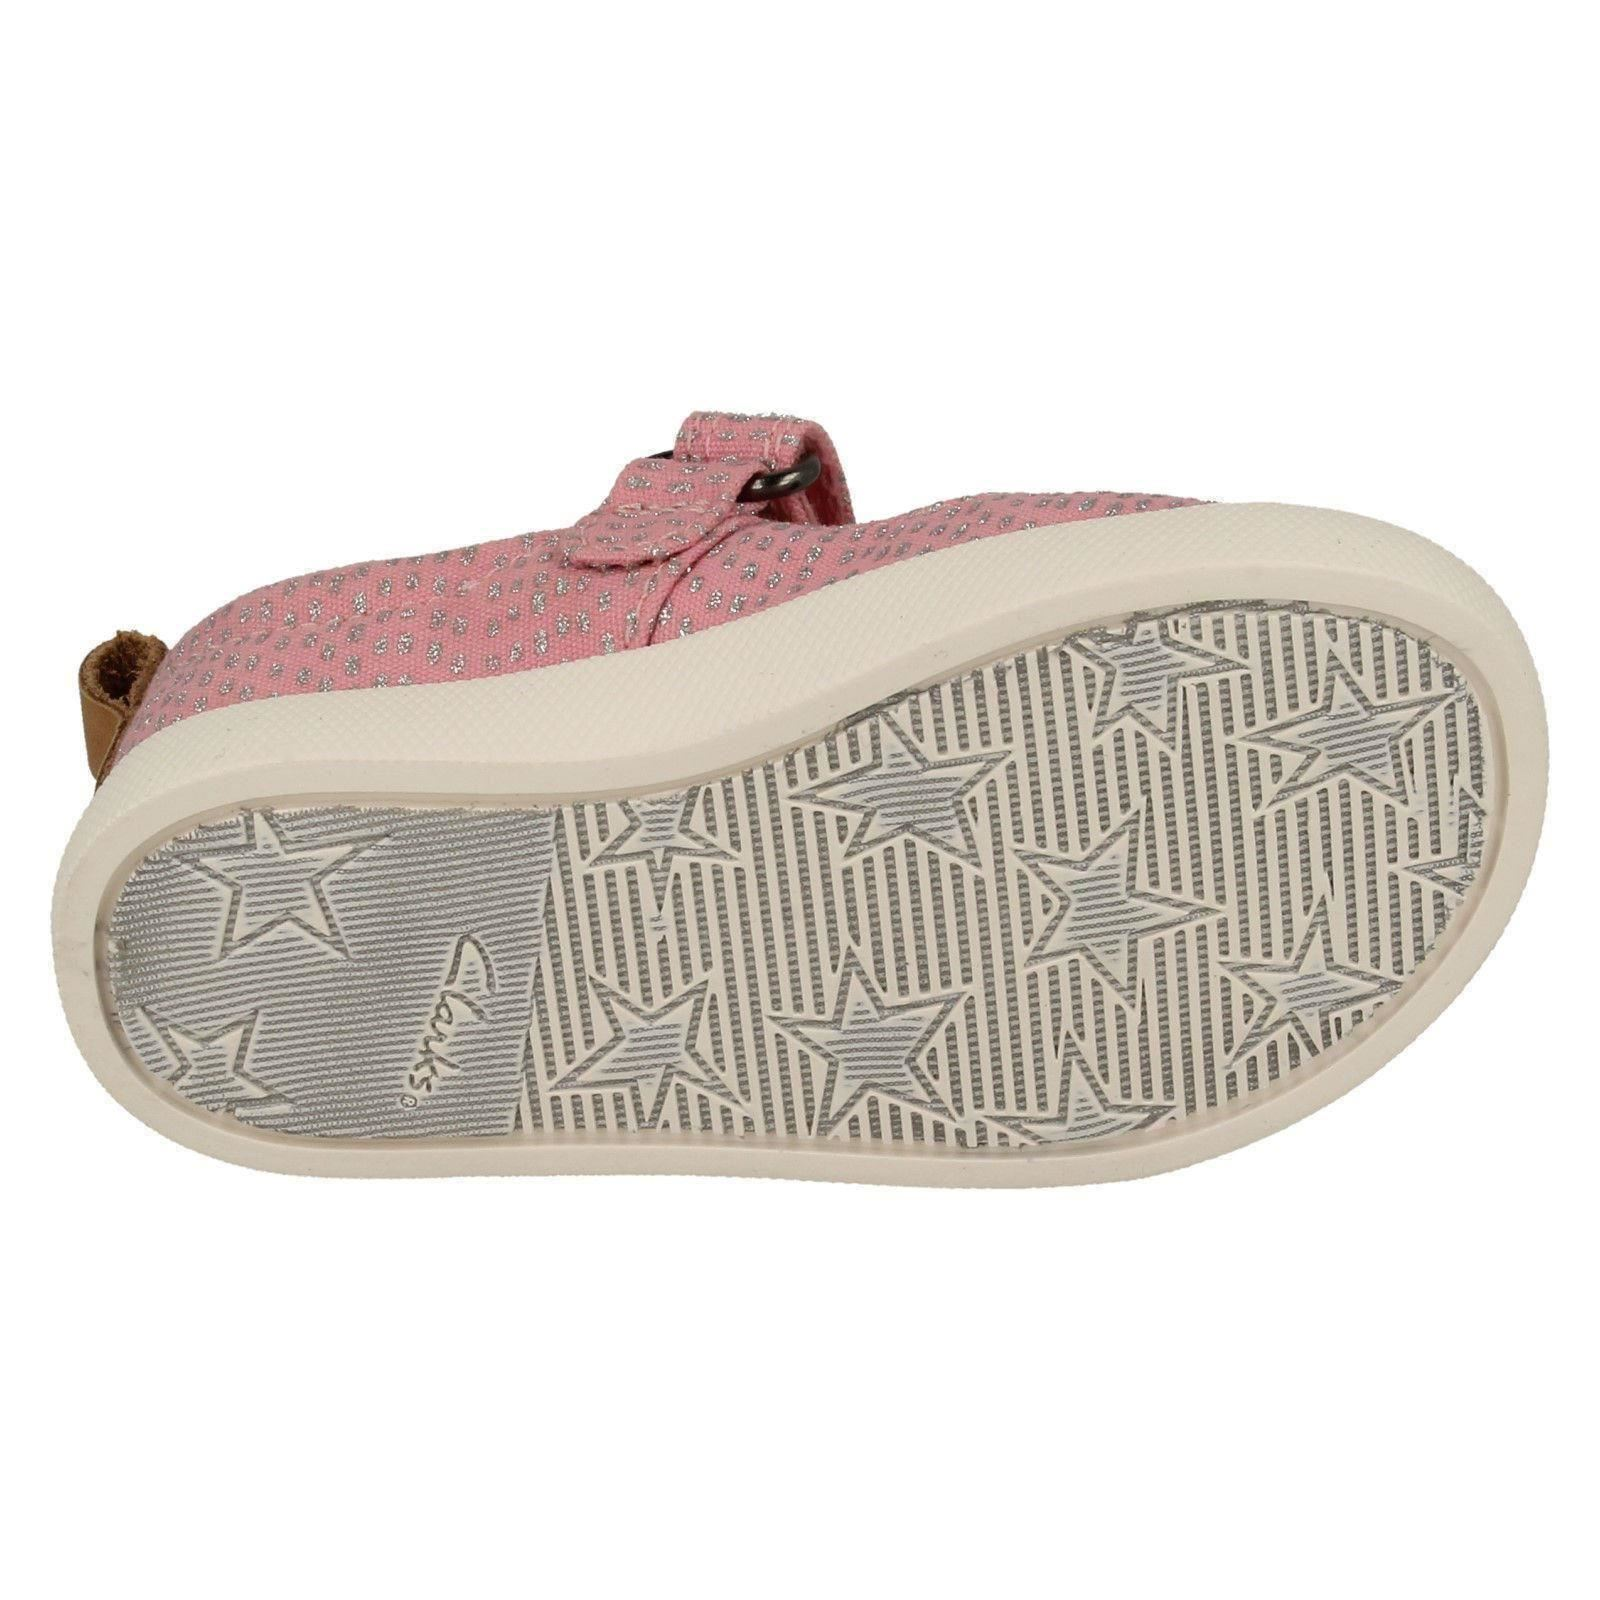 Halcy Wink Girls Clarks Casual Canvas Shoes